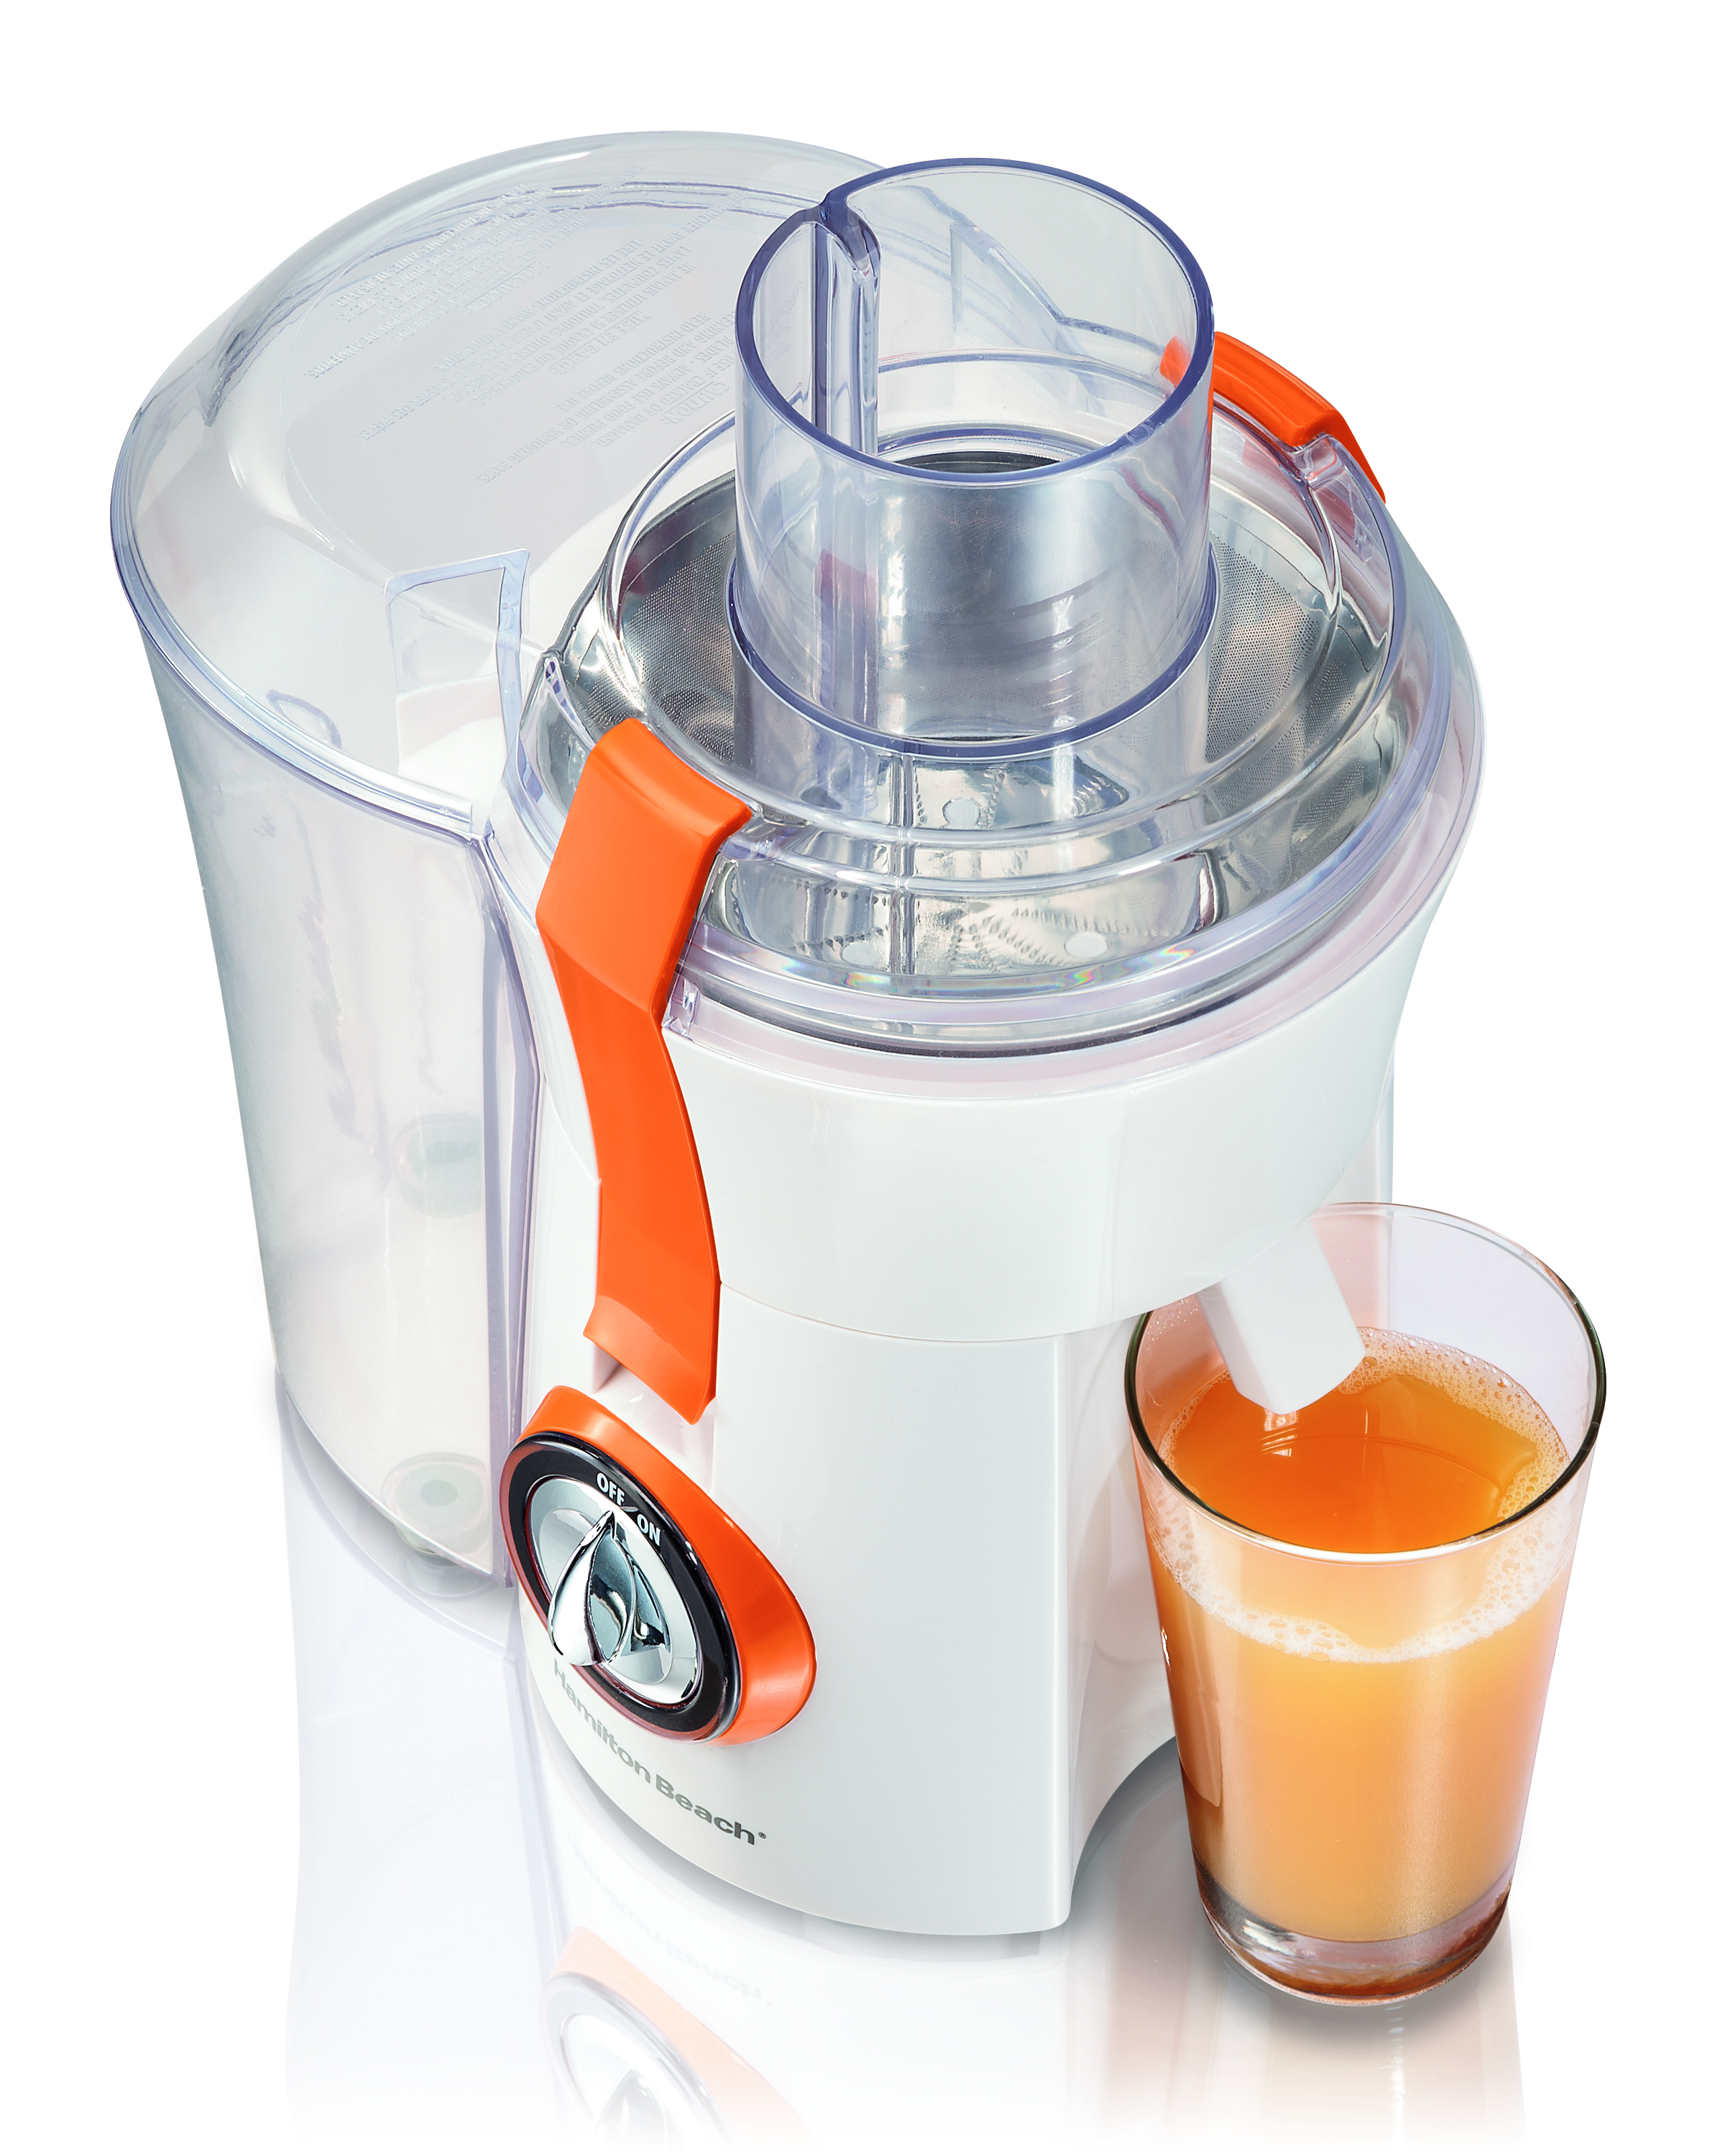 New Year New Juicer For A Healthy Lifestyle Kitchenware